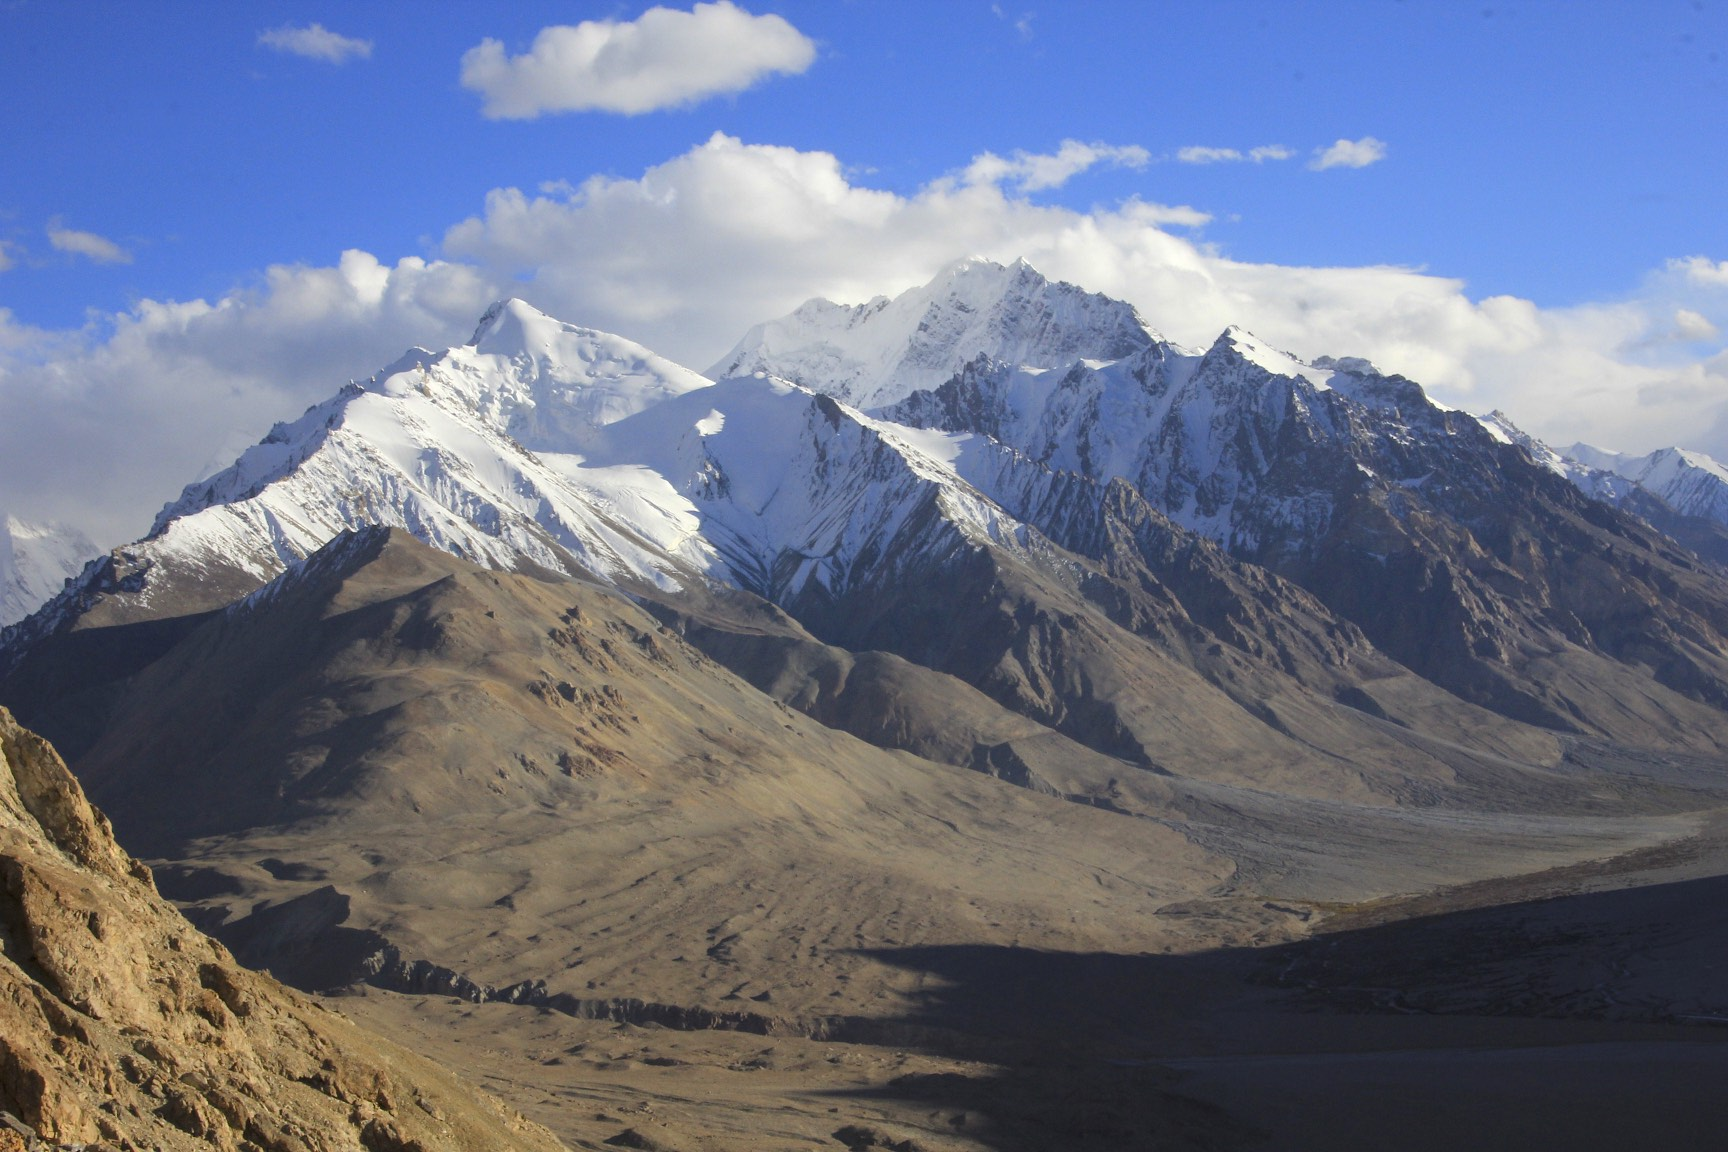 View of the Chinese Base Camp - the last non glacier camp before K2 glacier